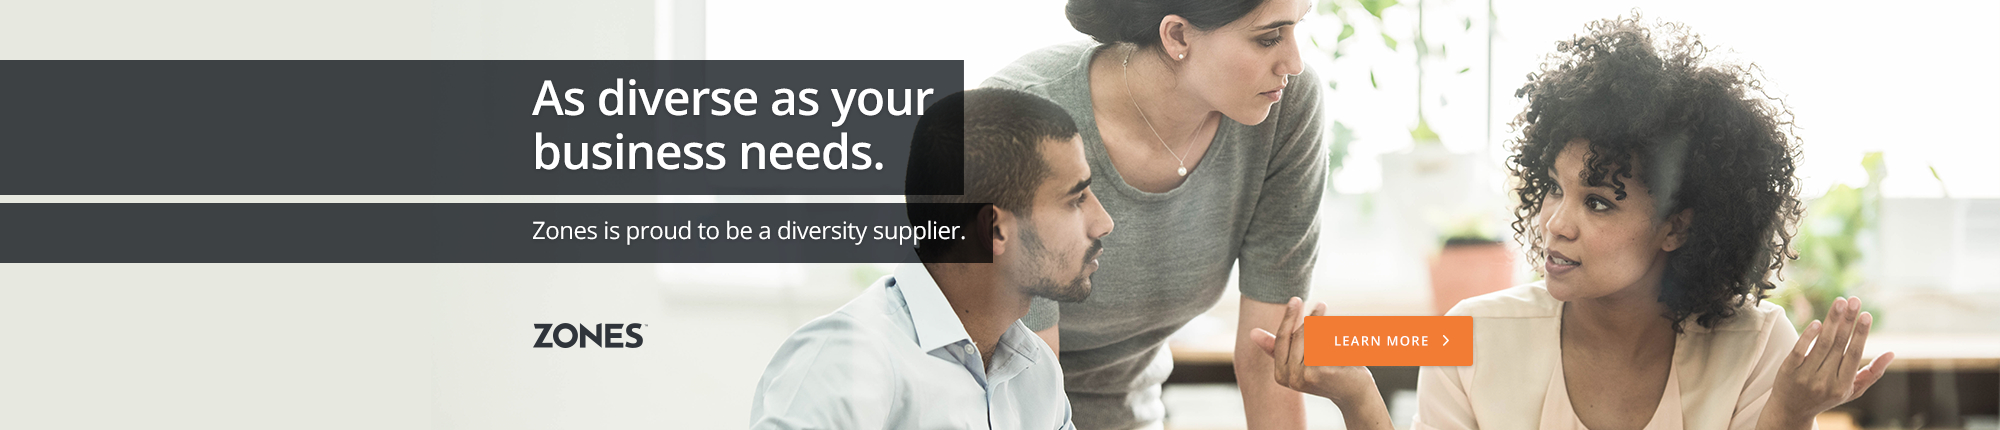 As diverse as your business needs. Zones is proud to be a diversity supplier.